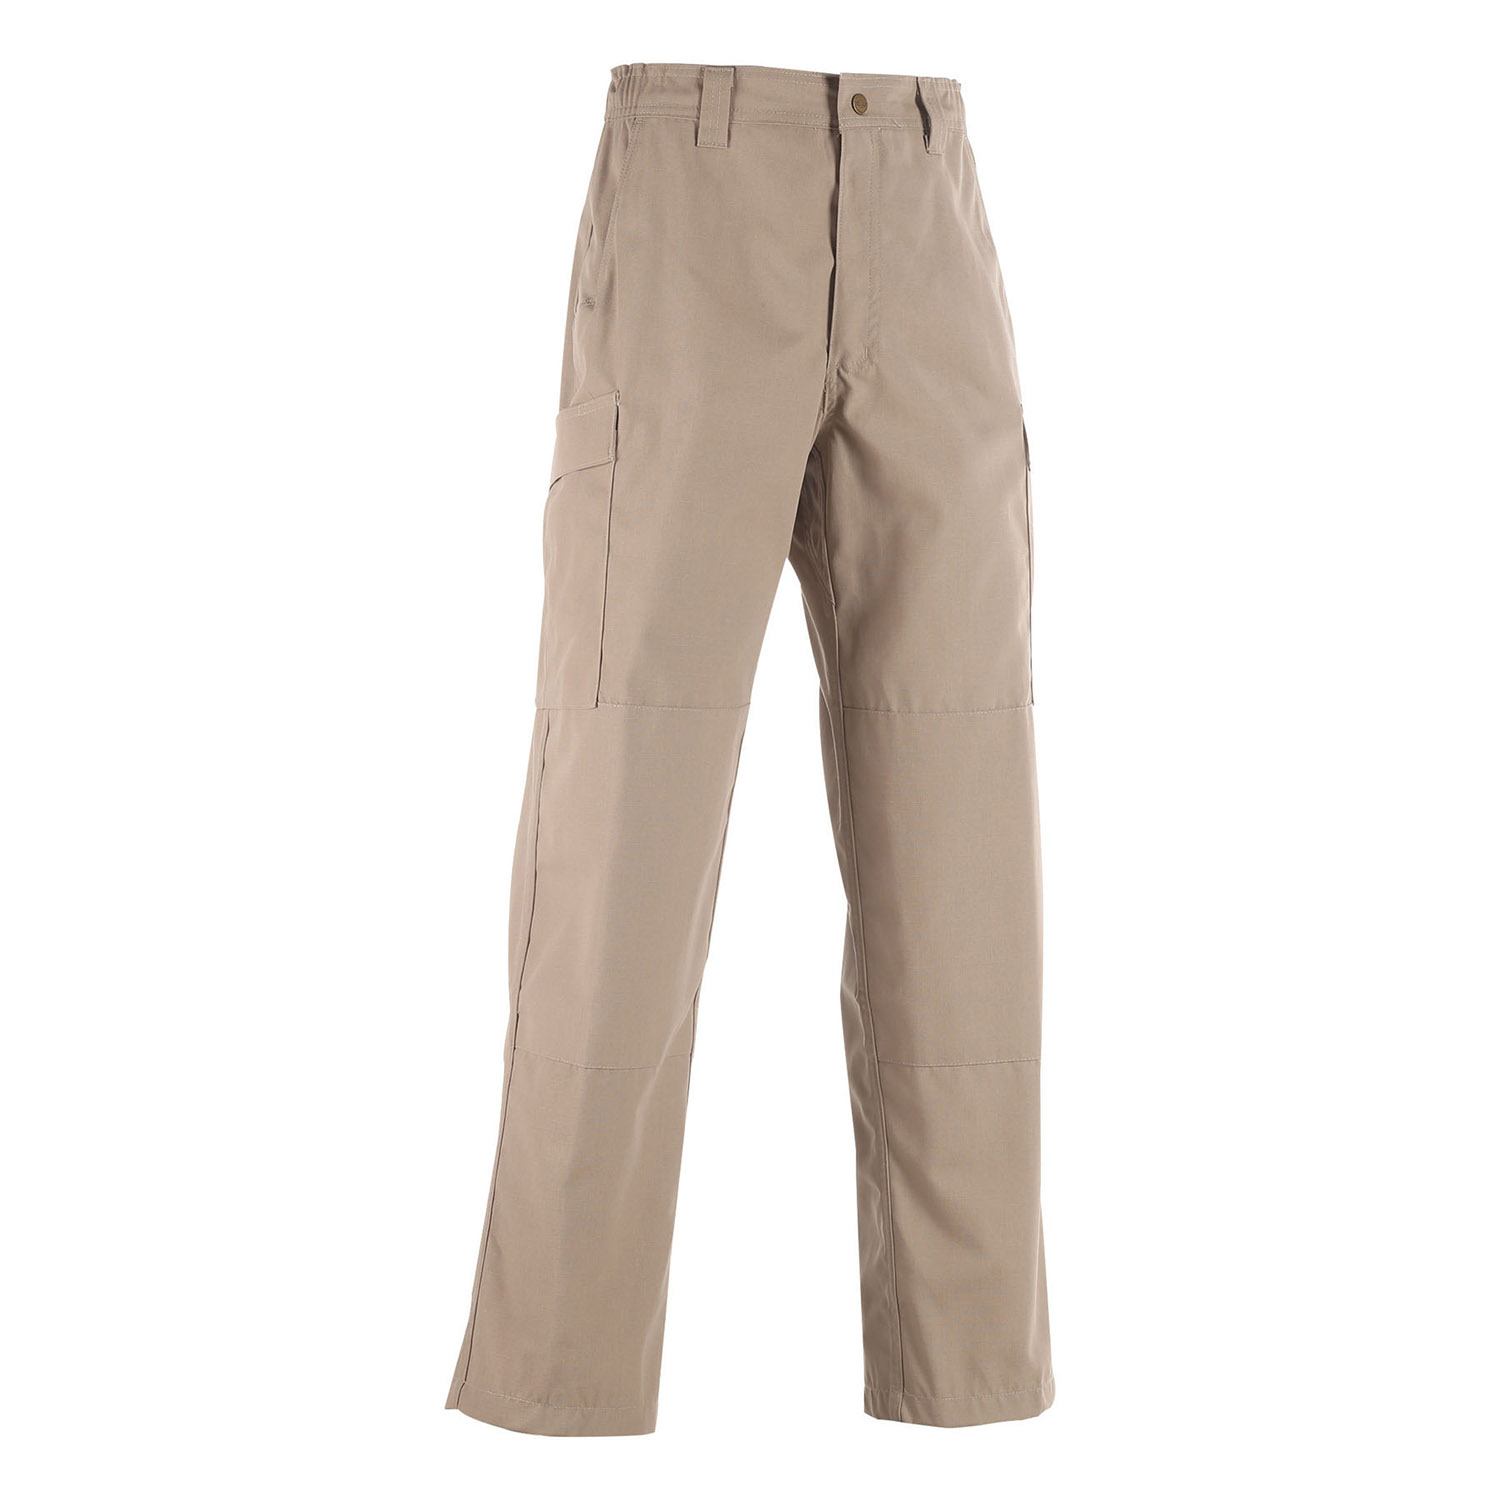 Tru-Spec 24-7 Simply Tactical Cargo Pants